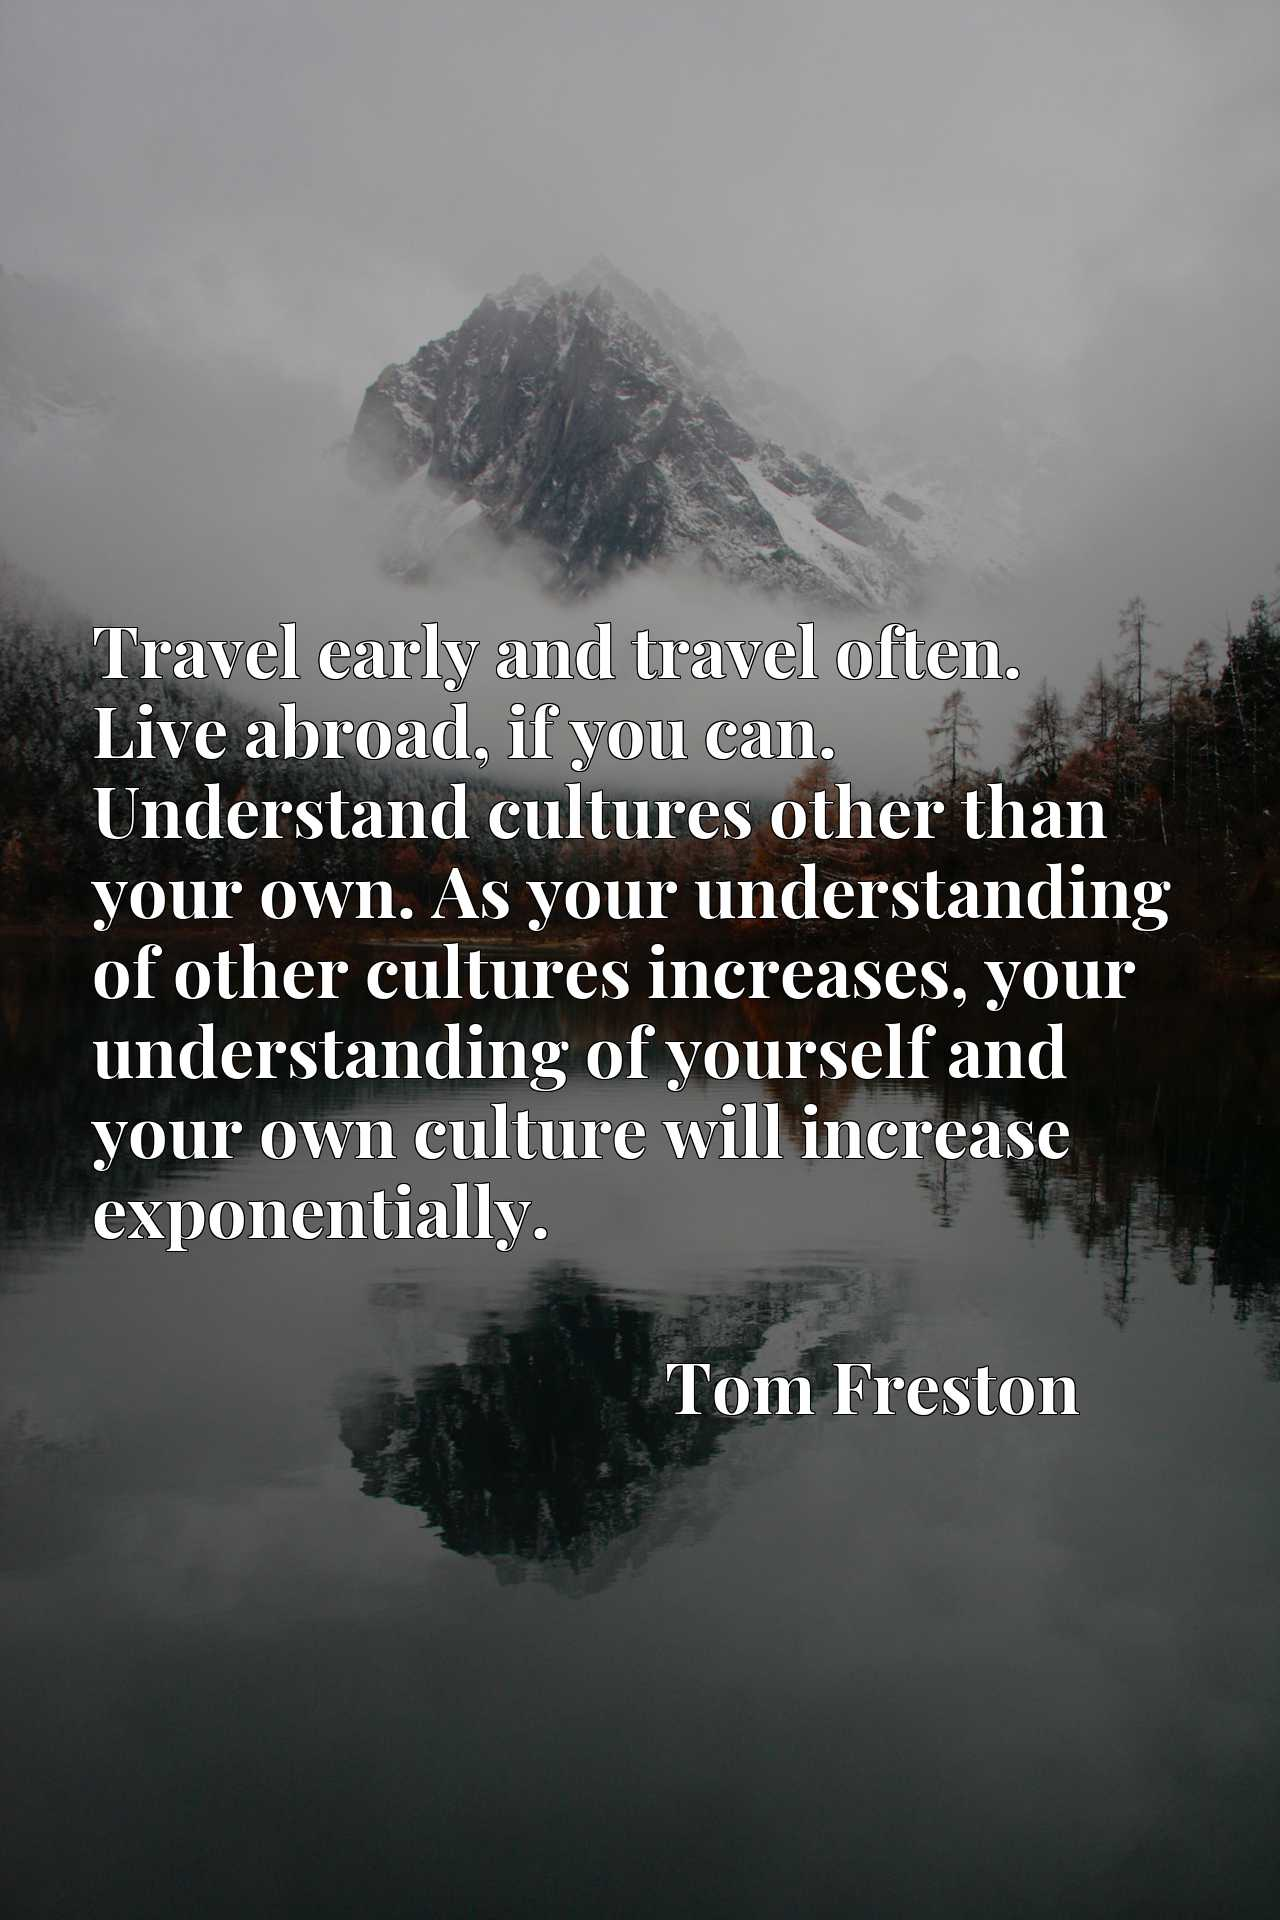 Travel early and travel often. Live abroad, if you can. Understand cultures other than your own. As your understanding of other cultures increases, your understanding of yourself and your own culture will increase exponentially.